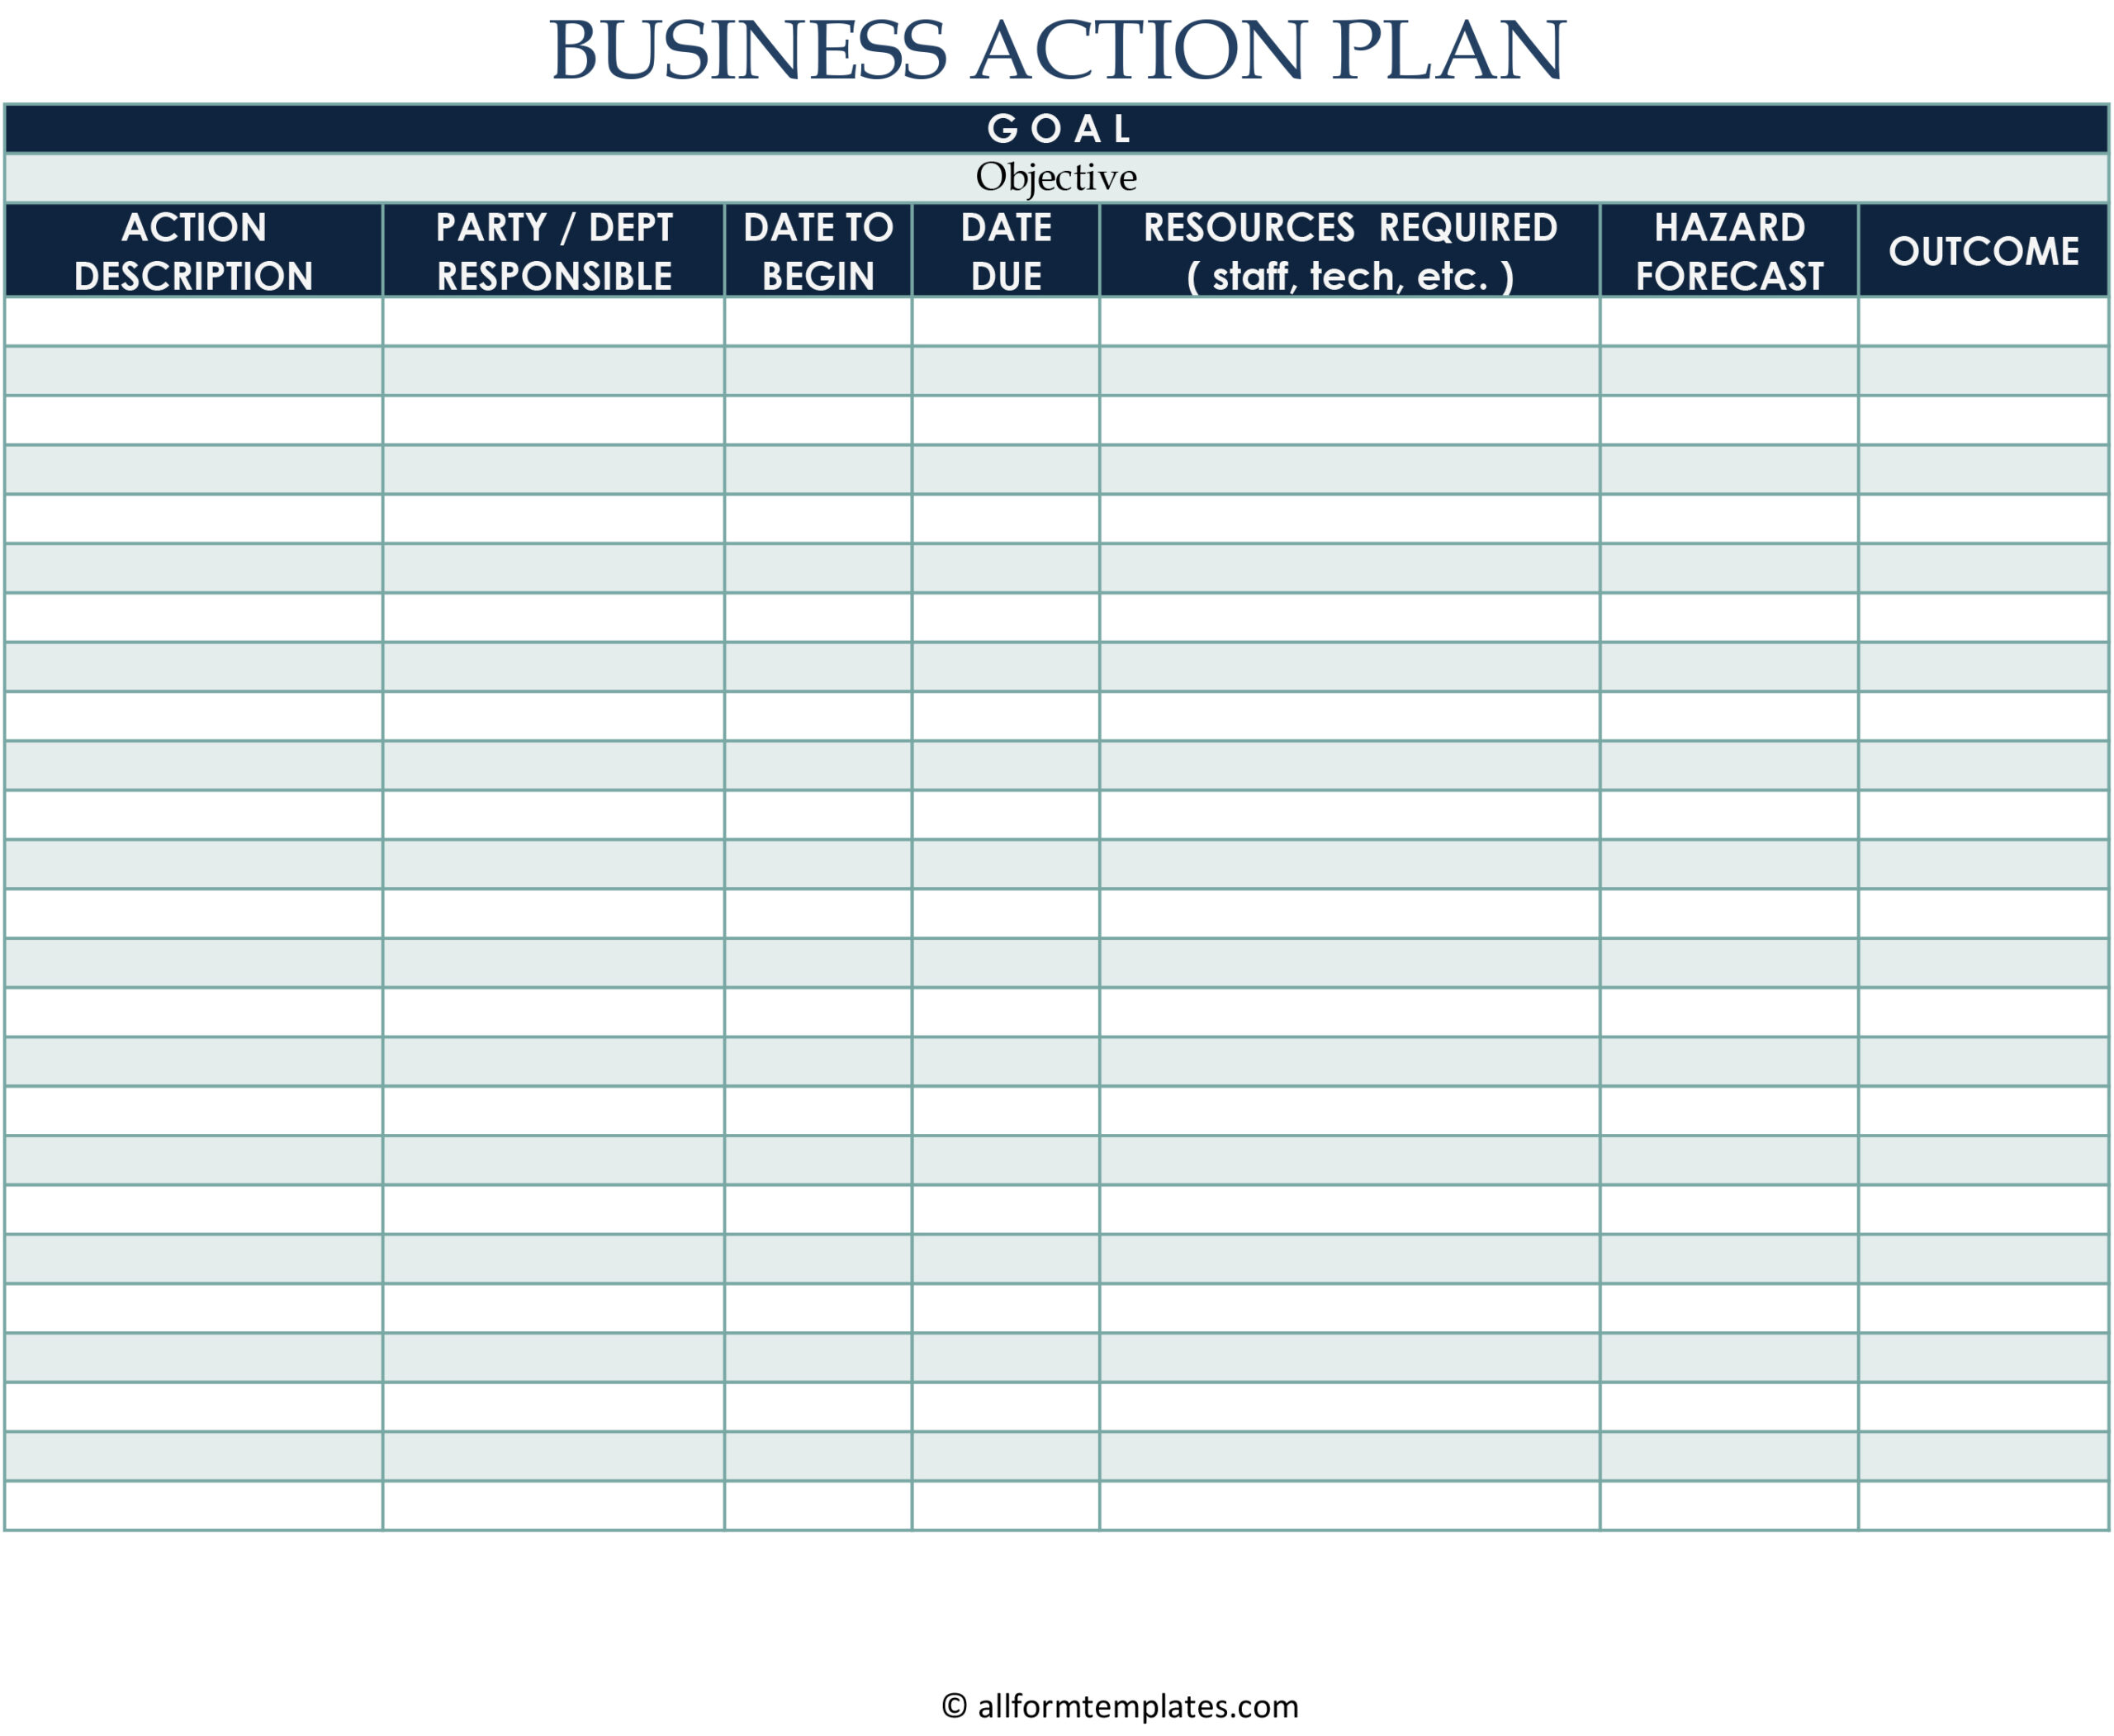 Business-Action-Plan-Template-HD